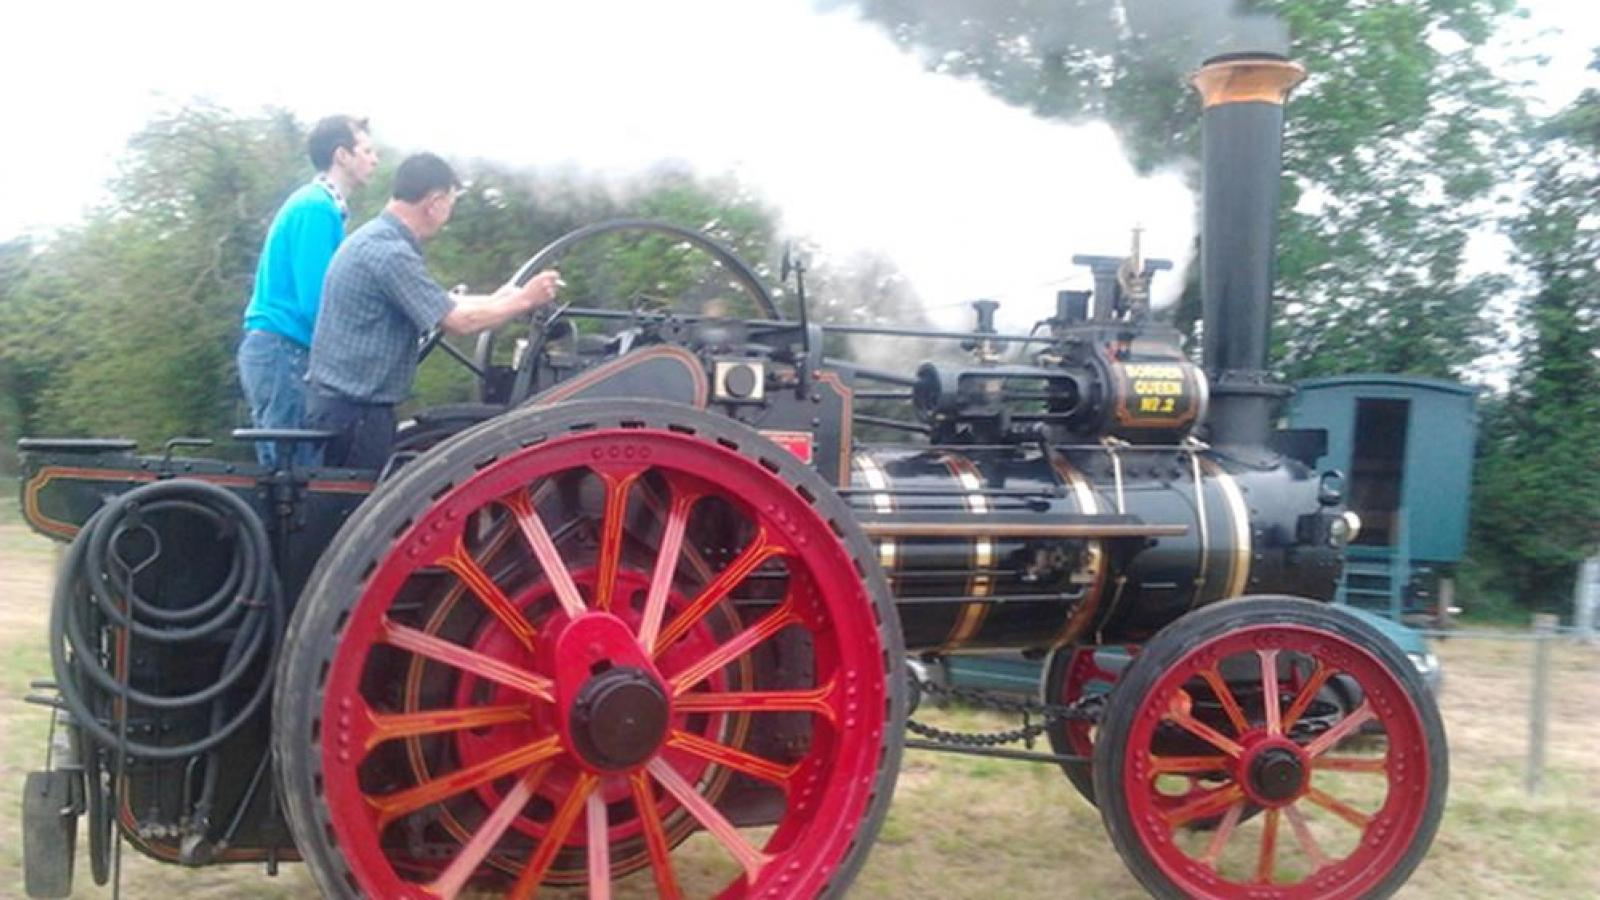 Inishannon steam rally